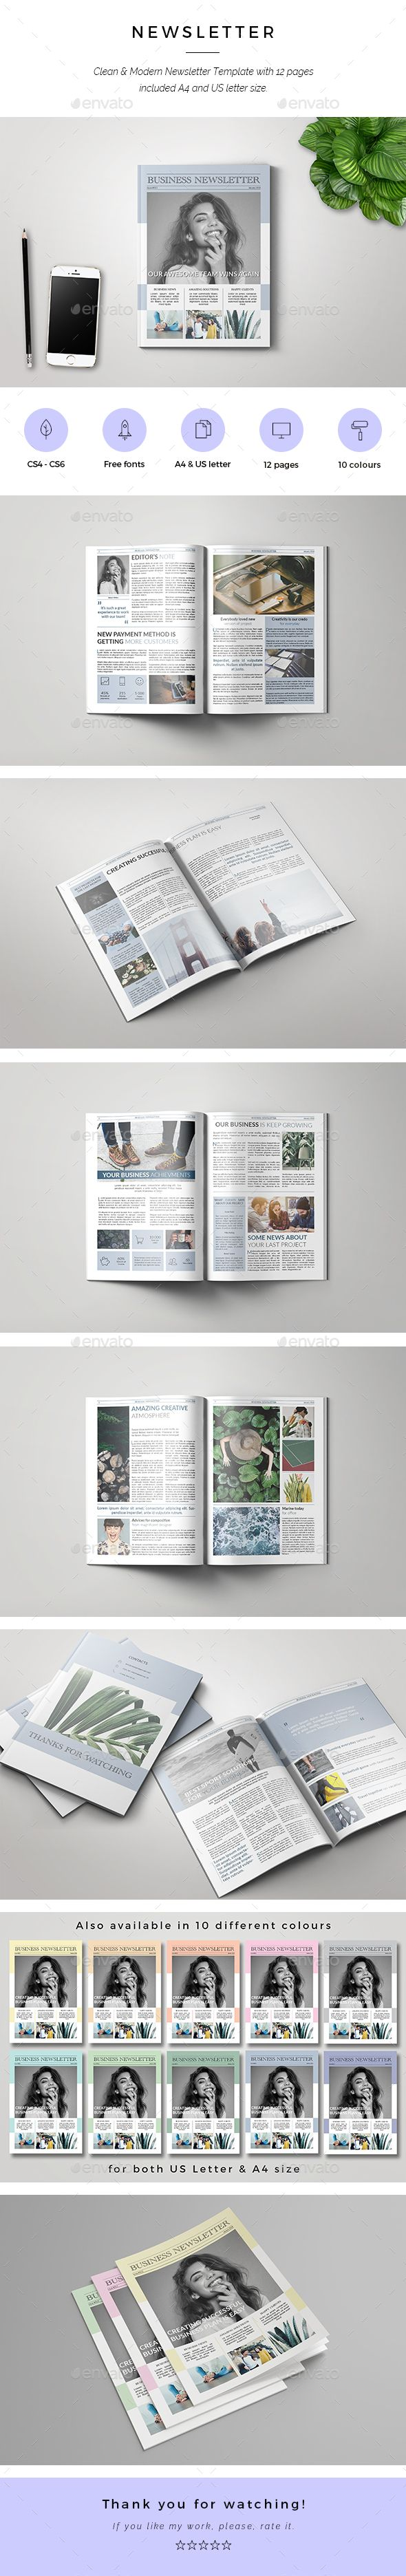 Business Newsletter Template InDesign INDD 12